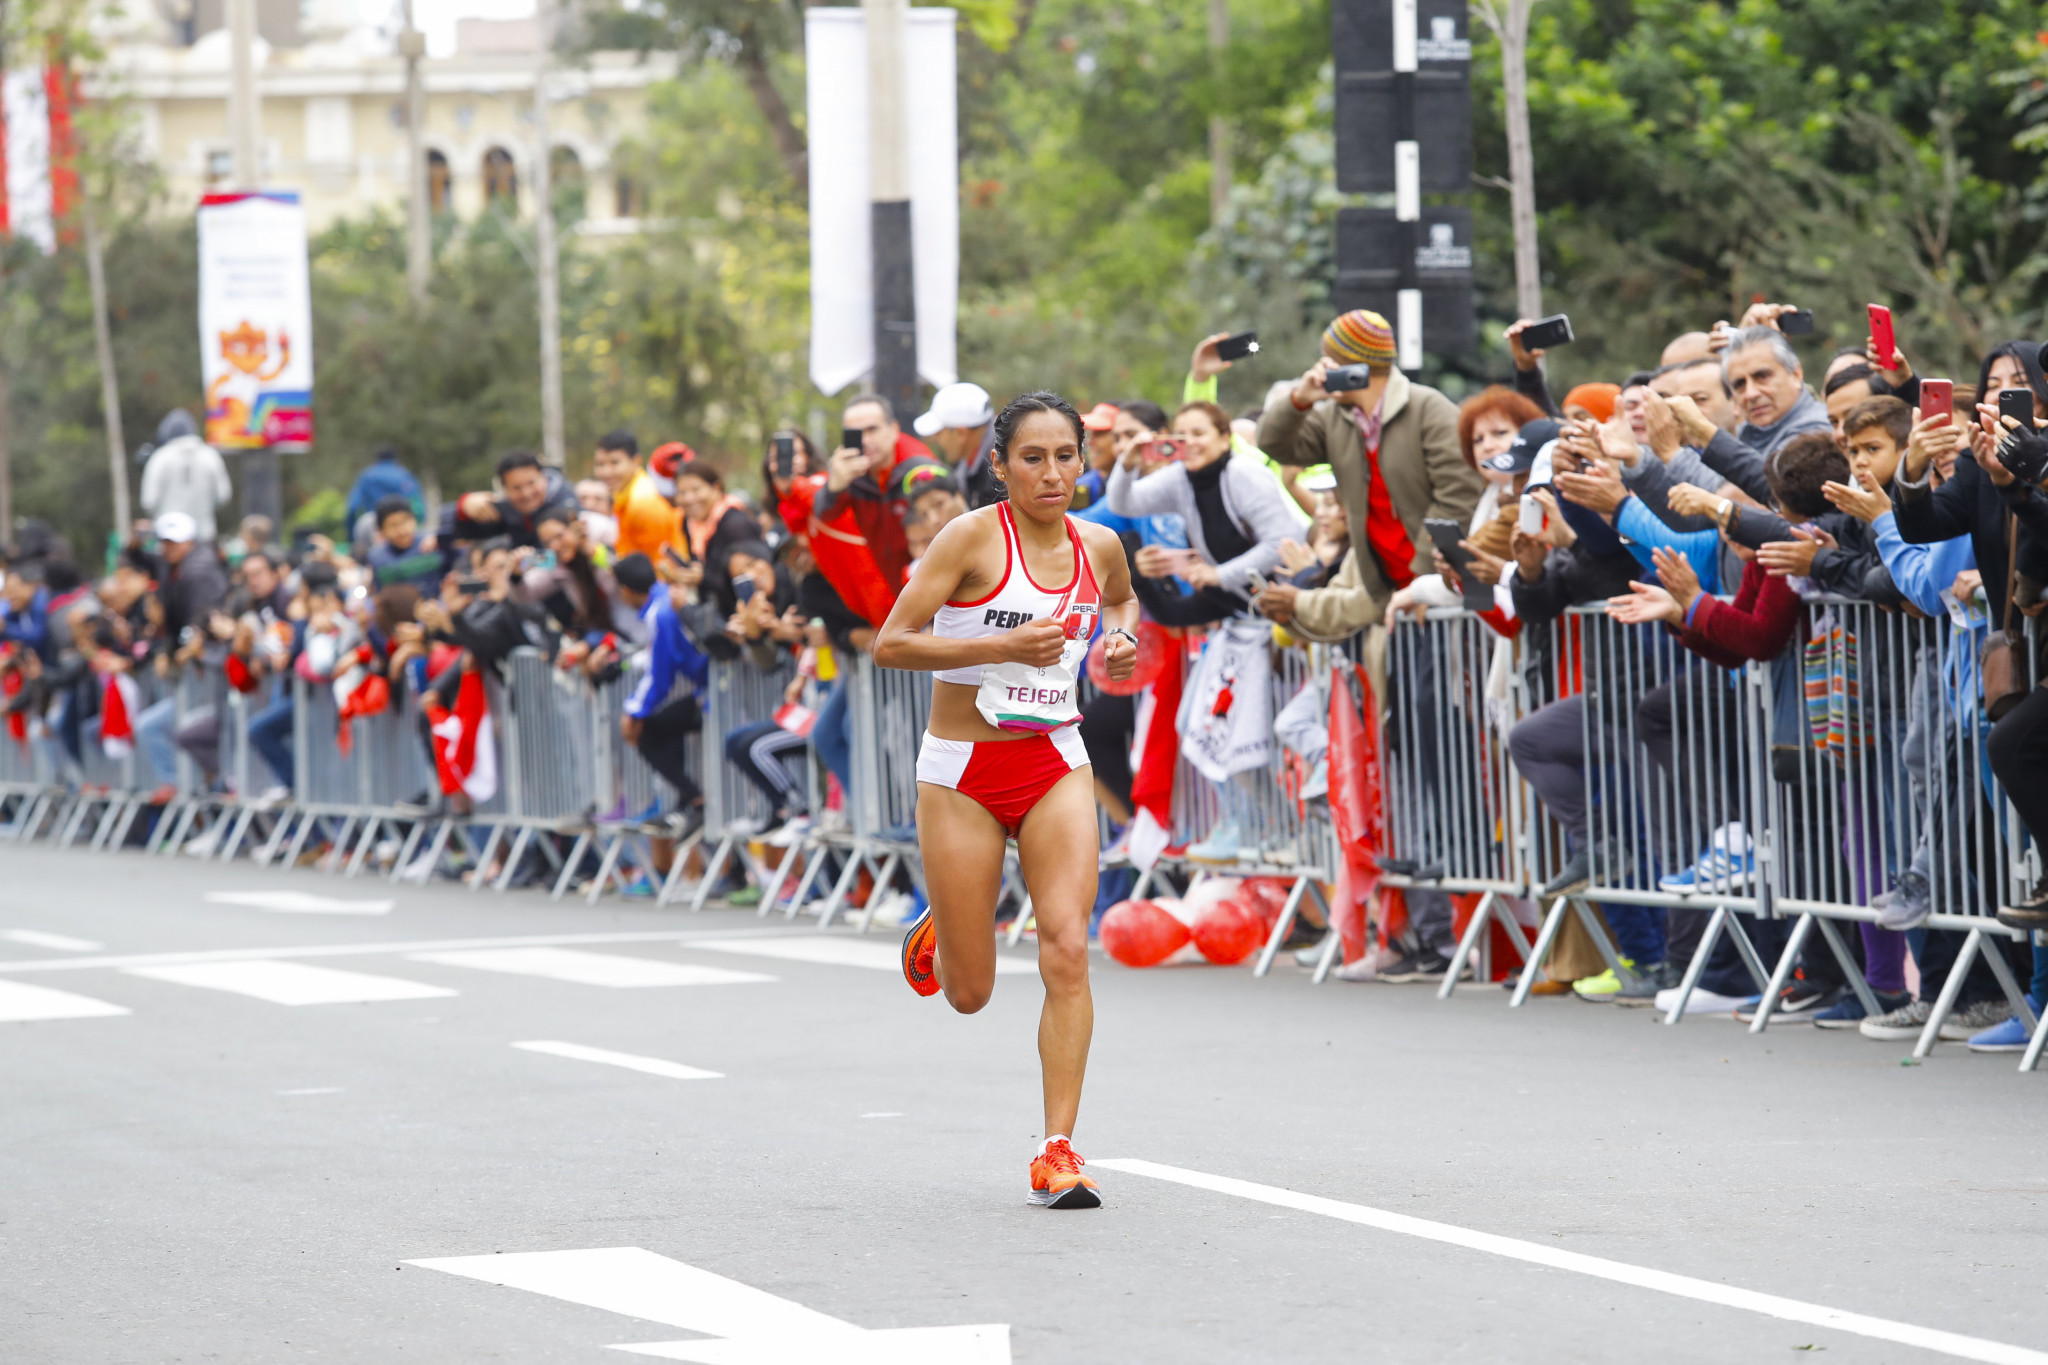 Gladys Tejeda won gold four years after being stripped of her Toronto 2015 marathon title ©Lima 2019